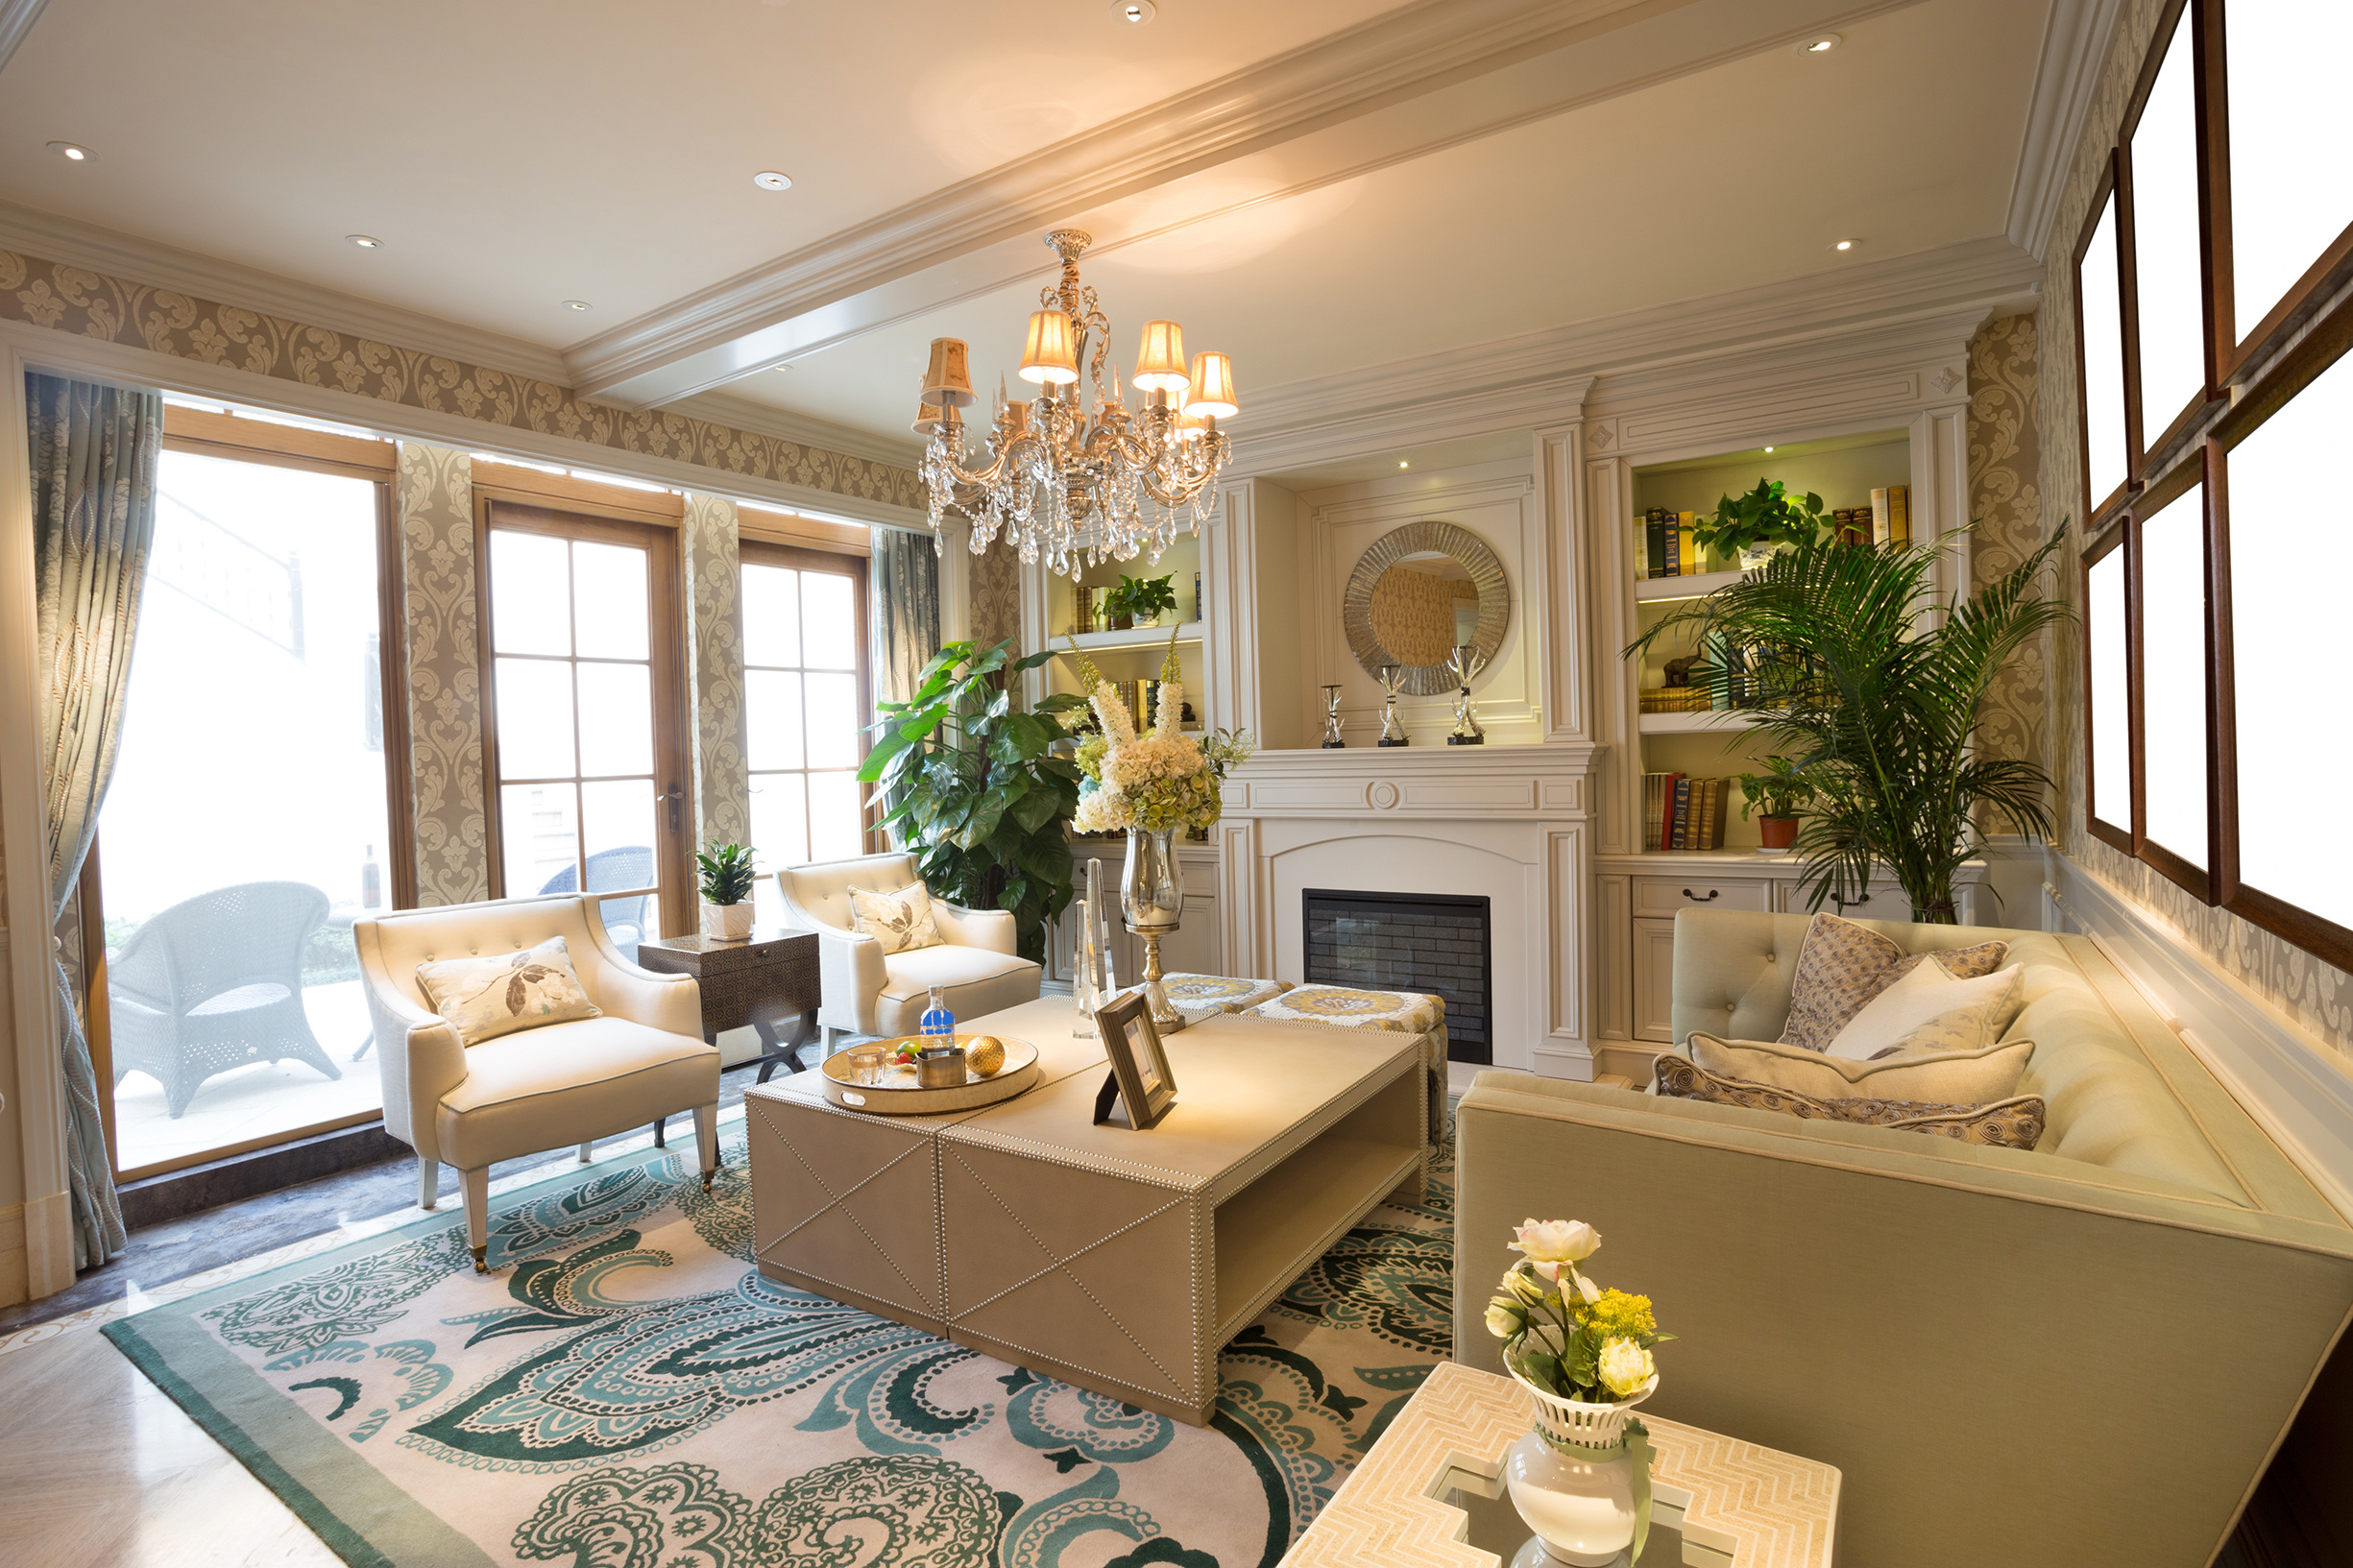 KHB INTERIORS New Orleans Interior Design Day of Design Bookcases and Furniture Layout